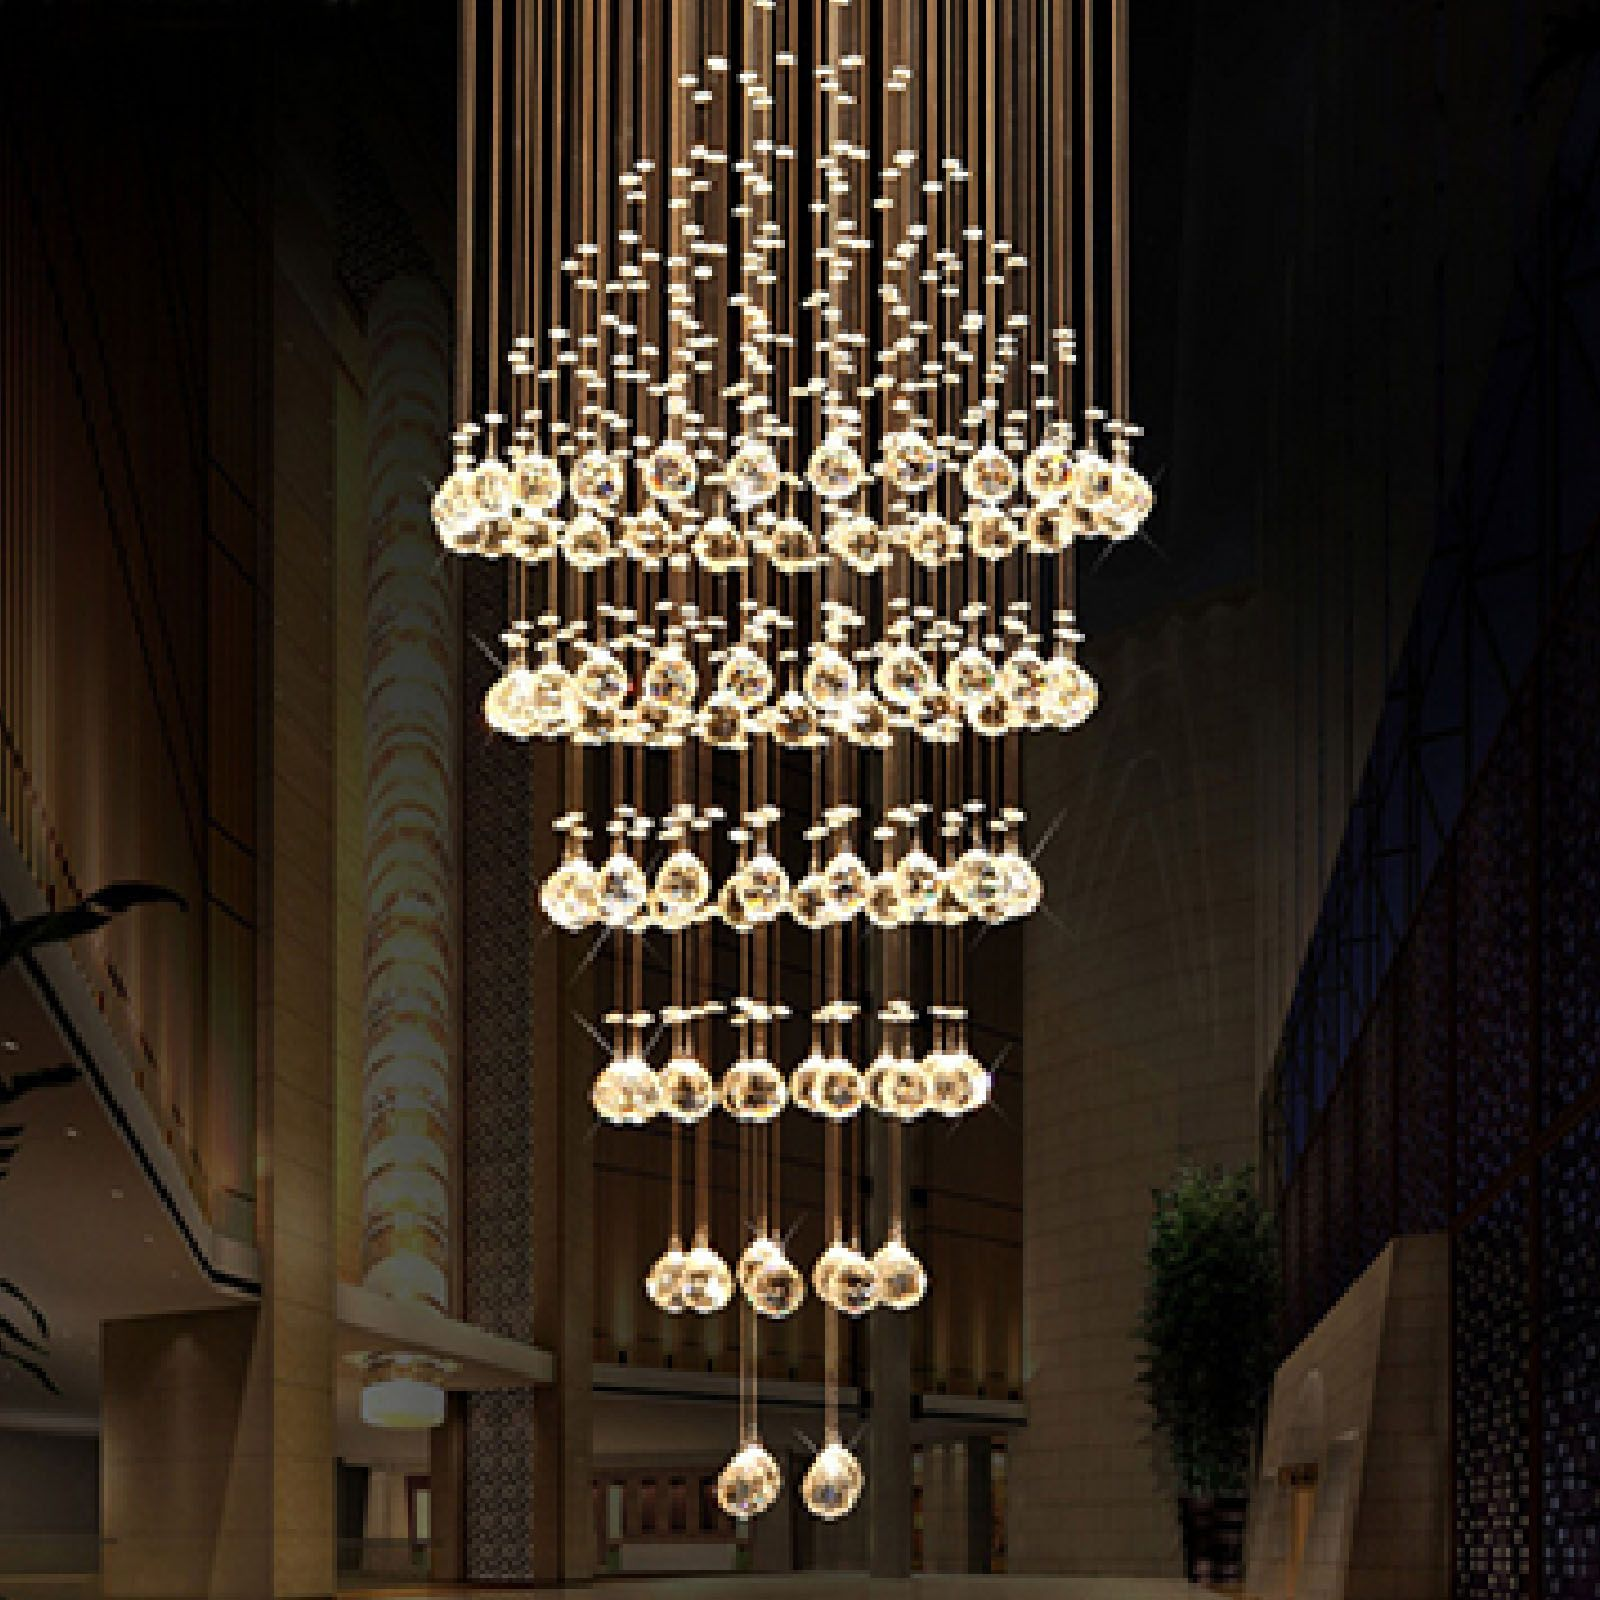 Byb Modern Chandelier Rain Drop Lighting Round Crystal Ball